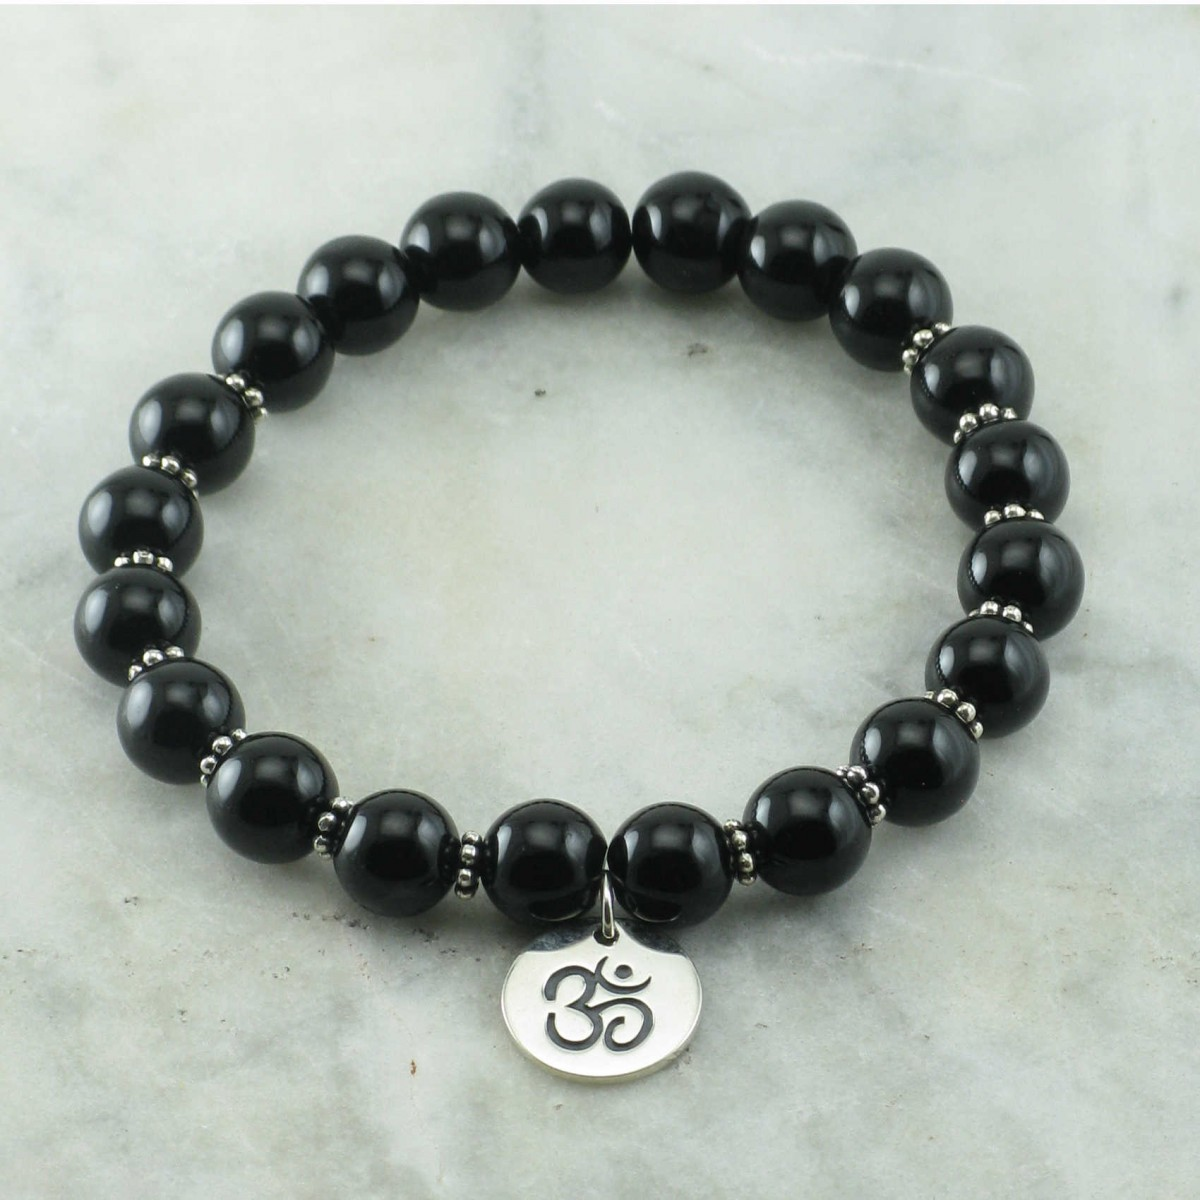 Perception_Chakra_Mala_Bracelet_21_Black_Jade_Mala_Beads